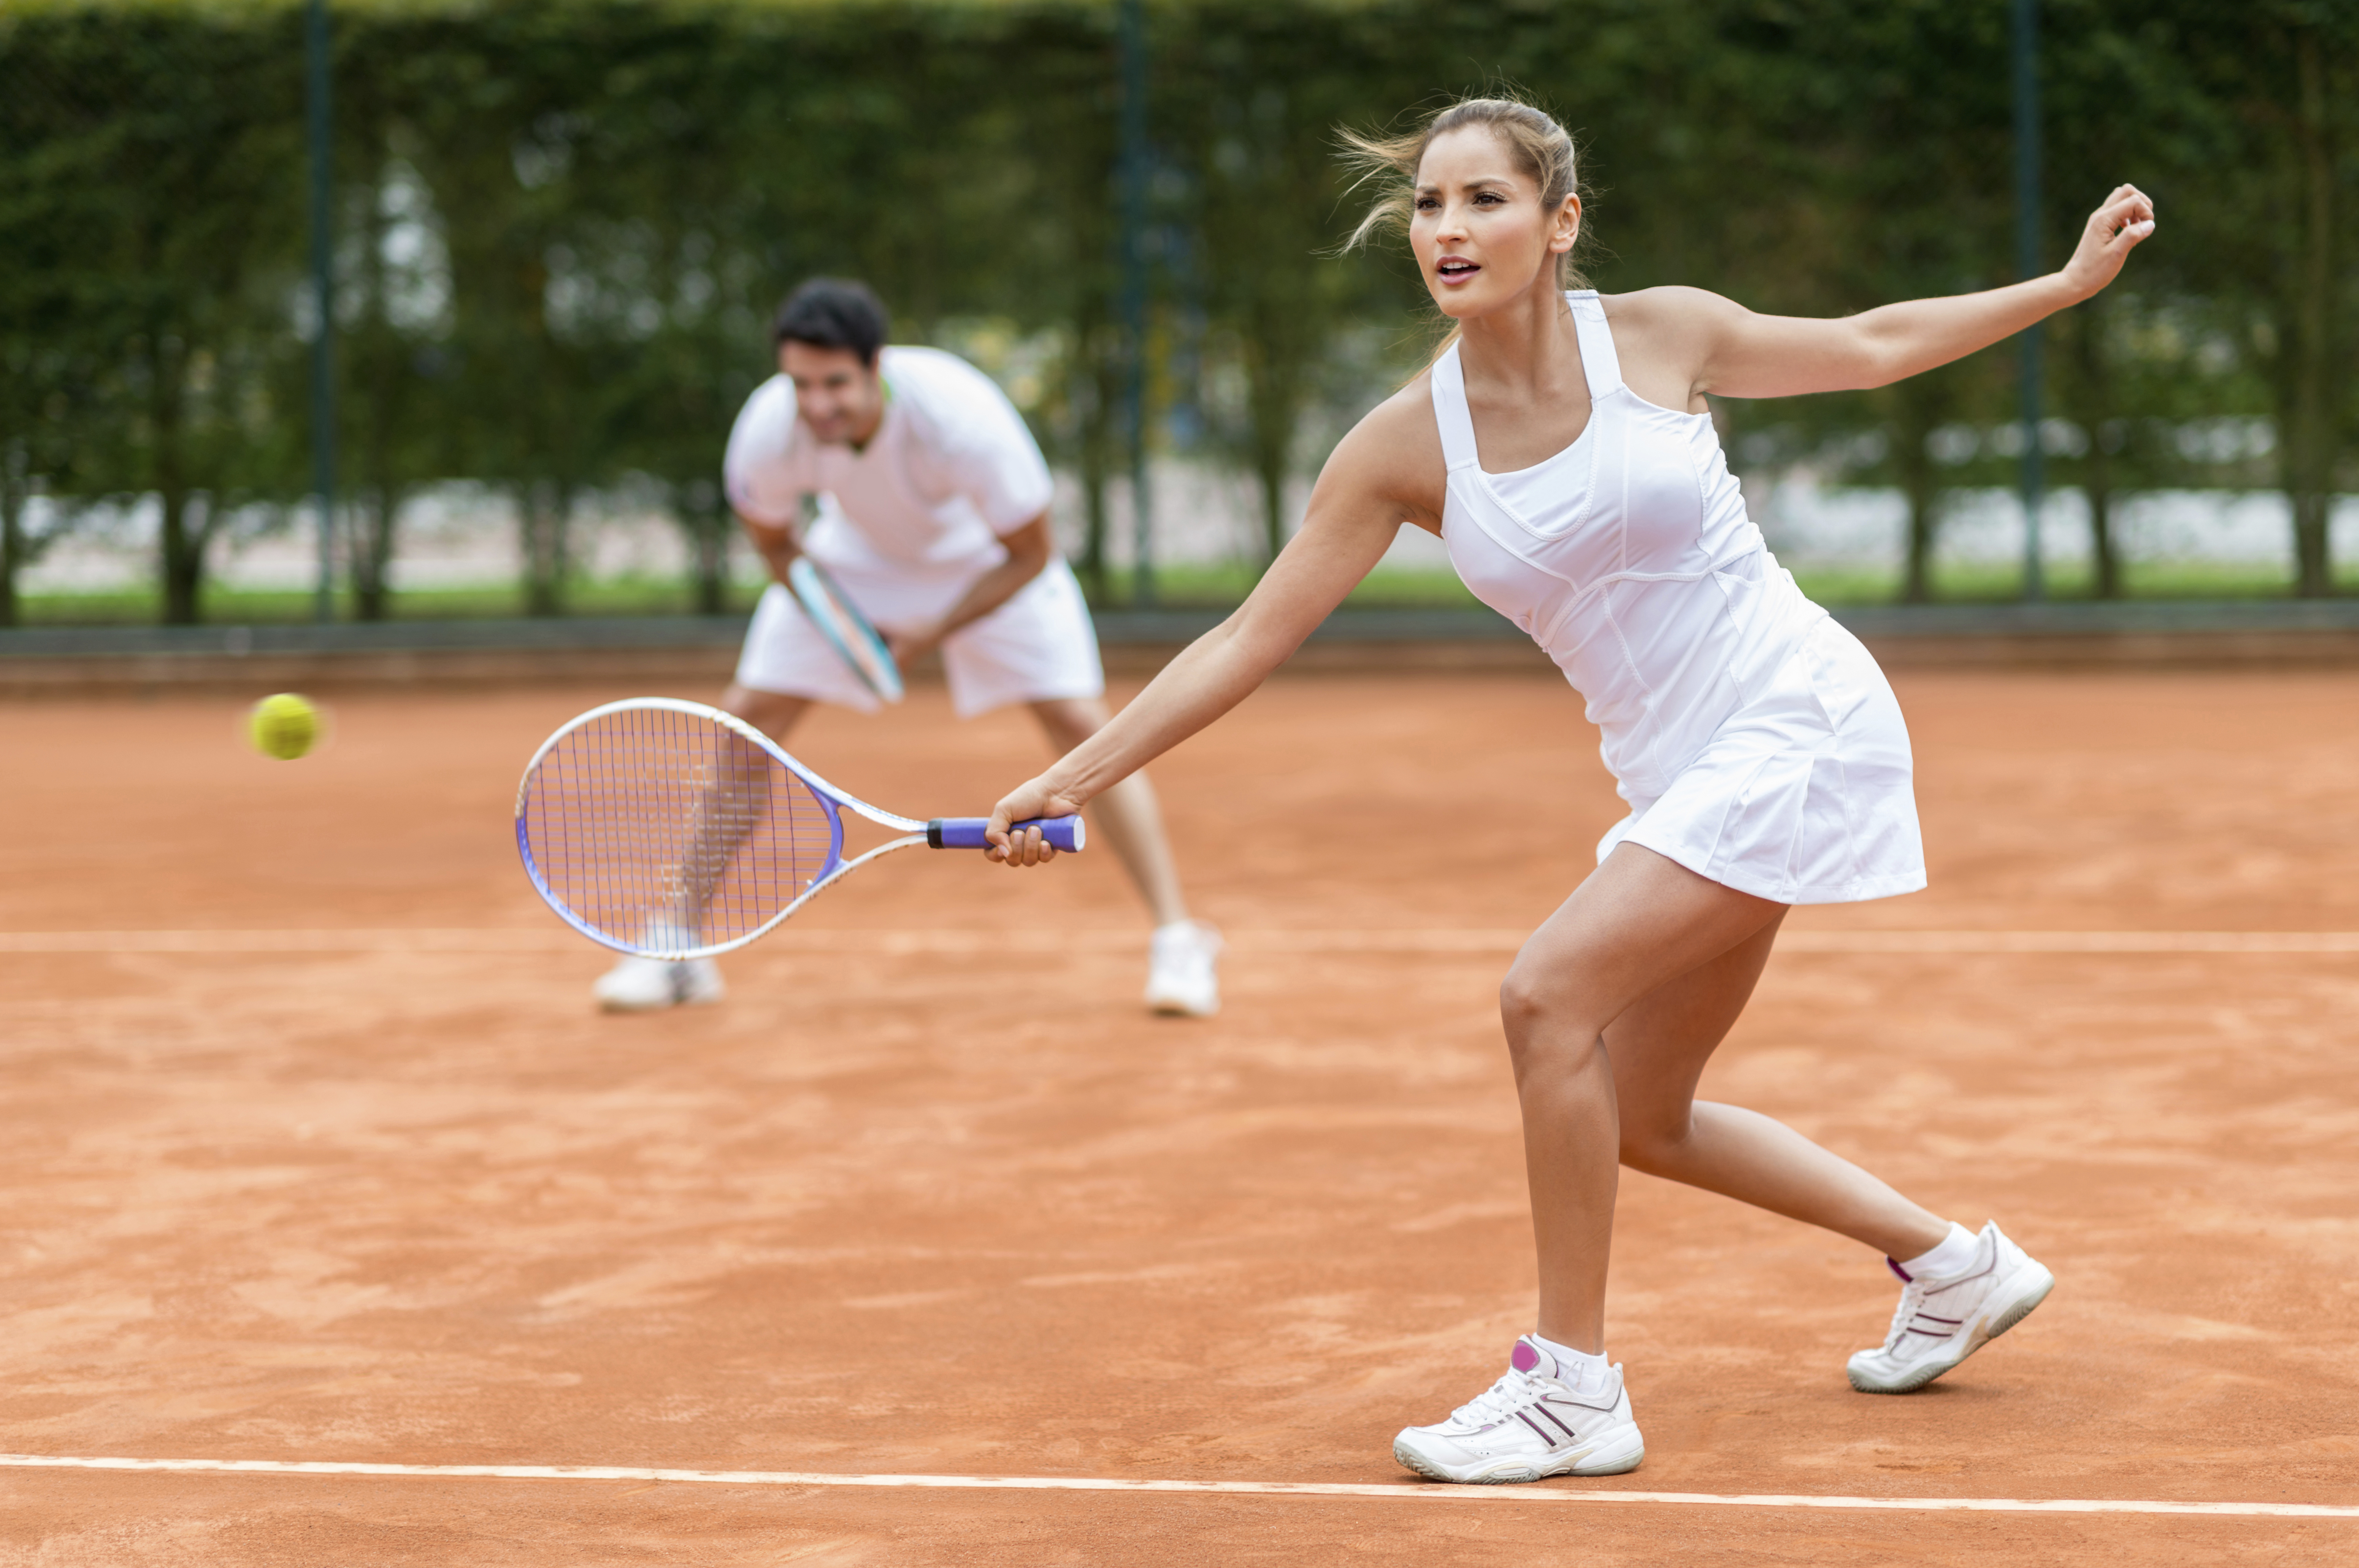 couple playing tennis on a date